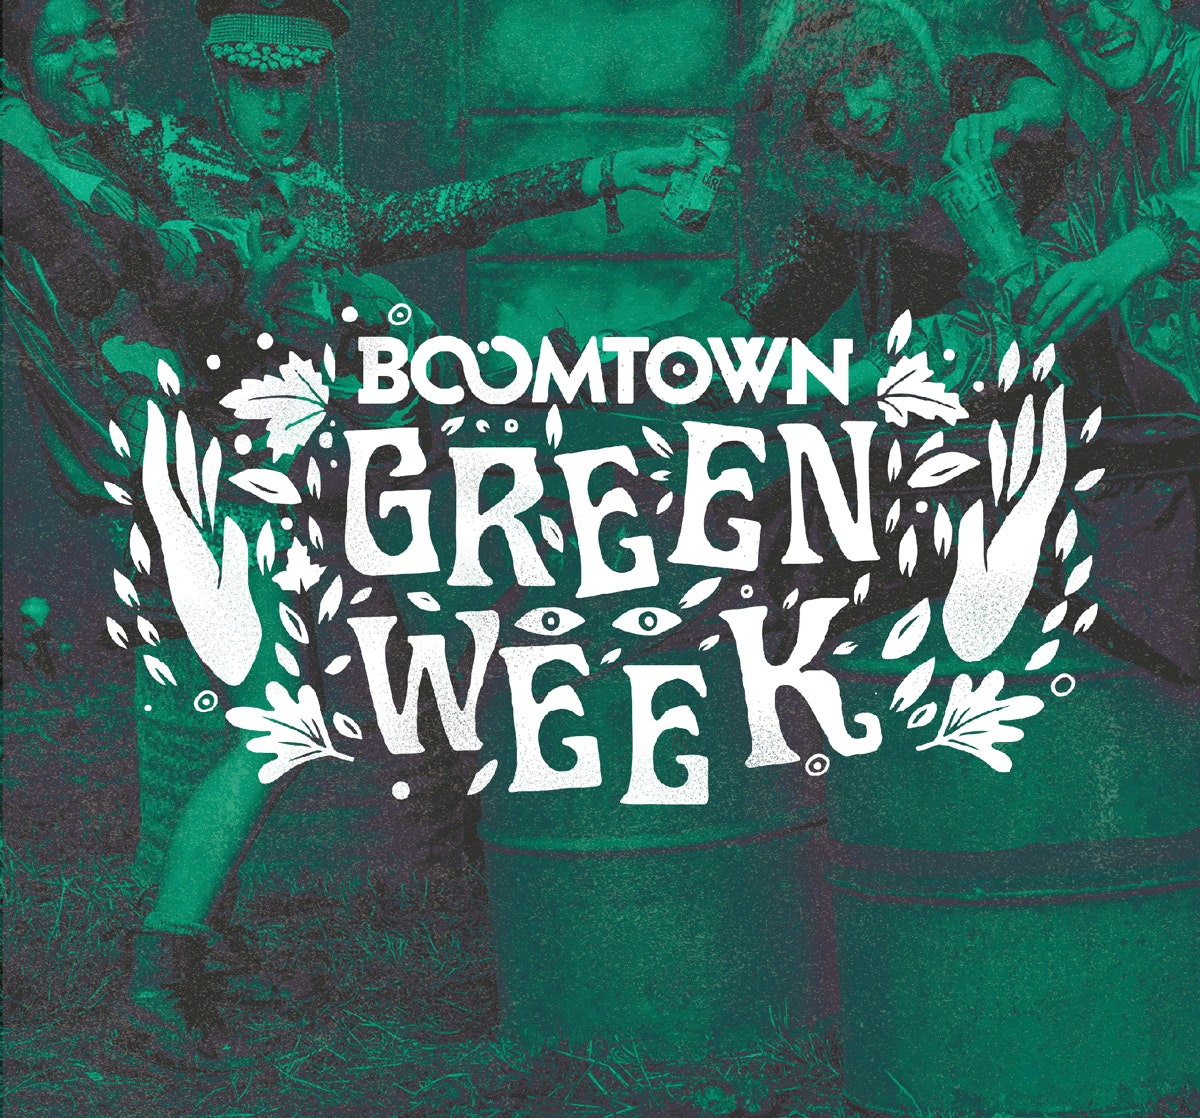 Green Week: Huge News!